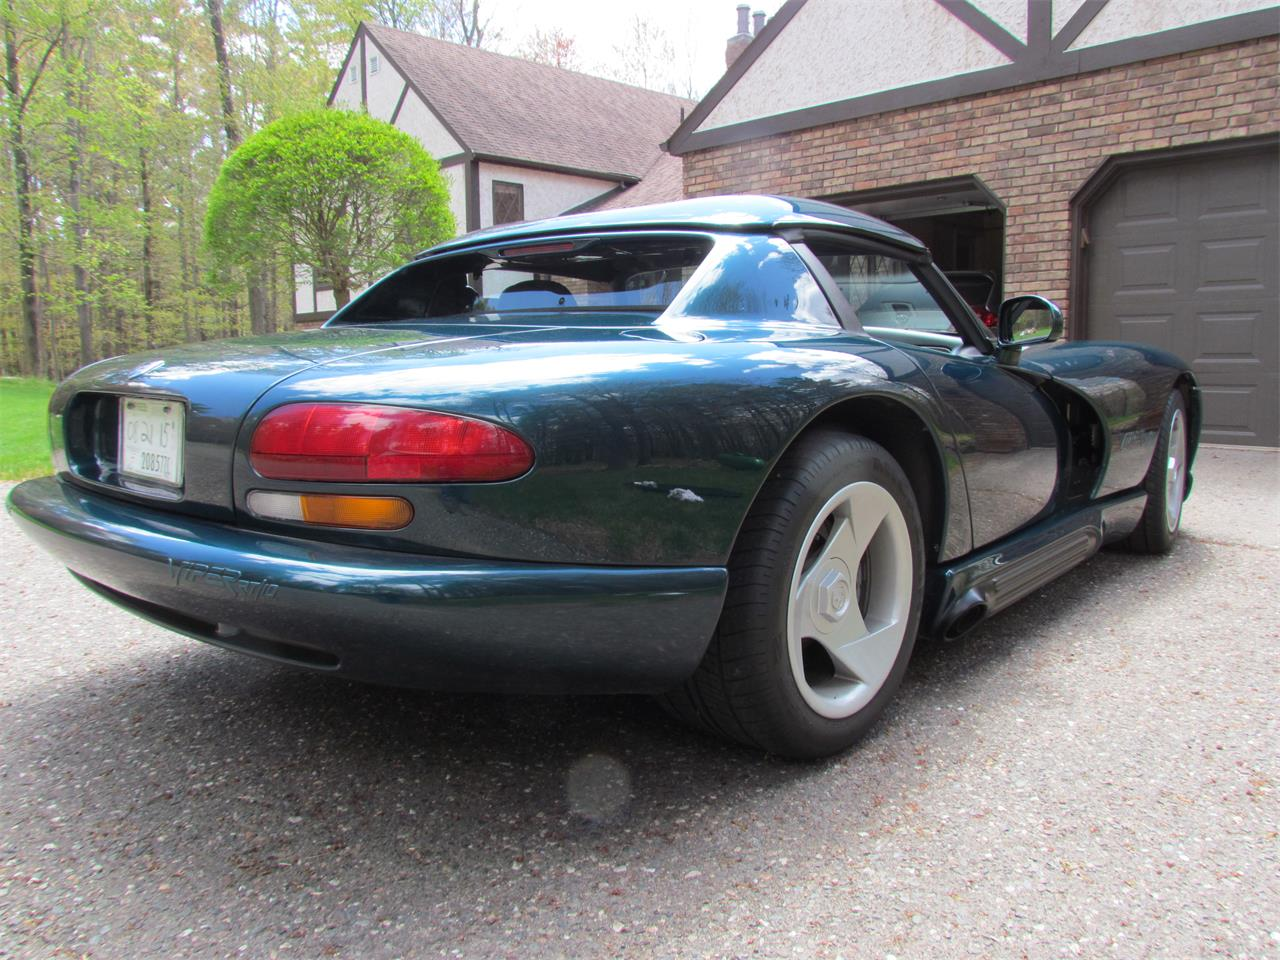 Large Picture of '95 Viper - $41,700.00 Offered by a Private Seller - PYHM